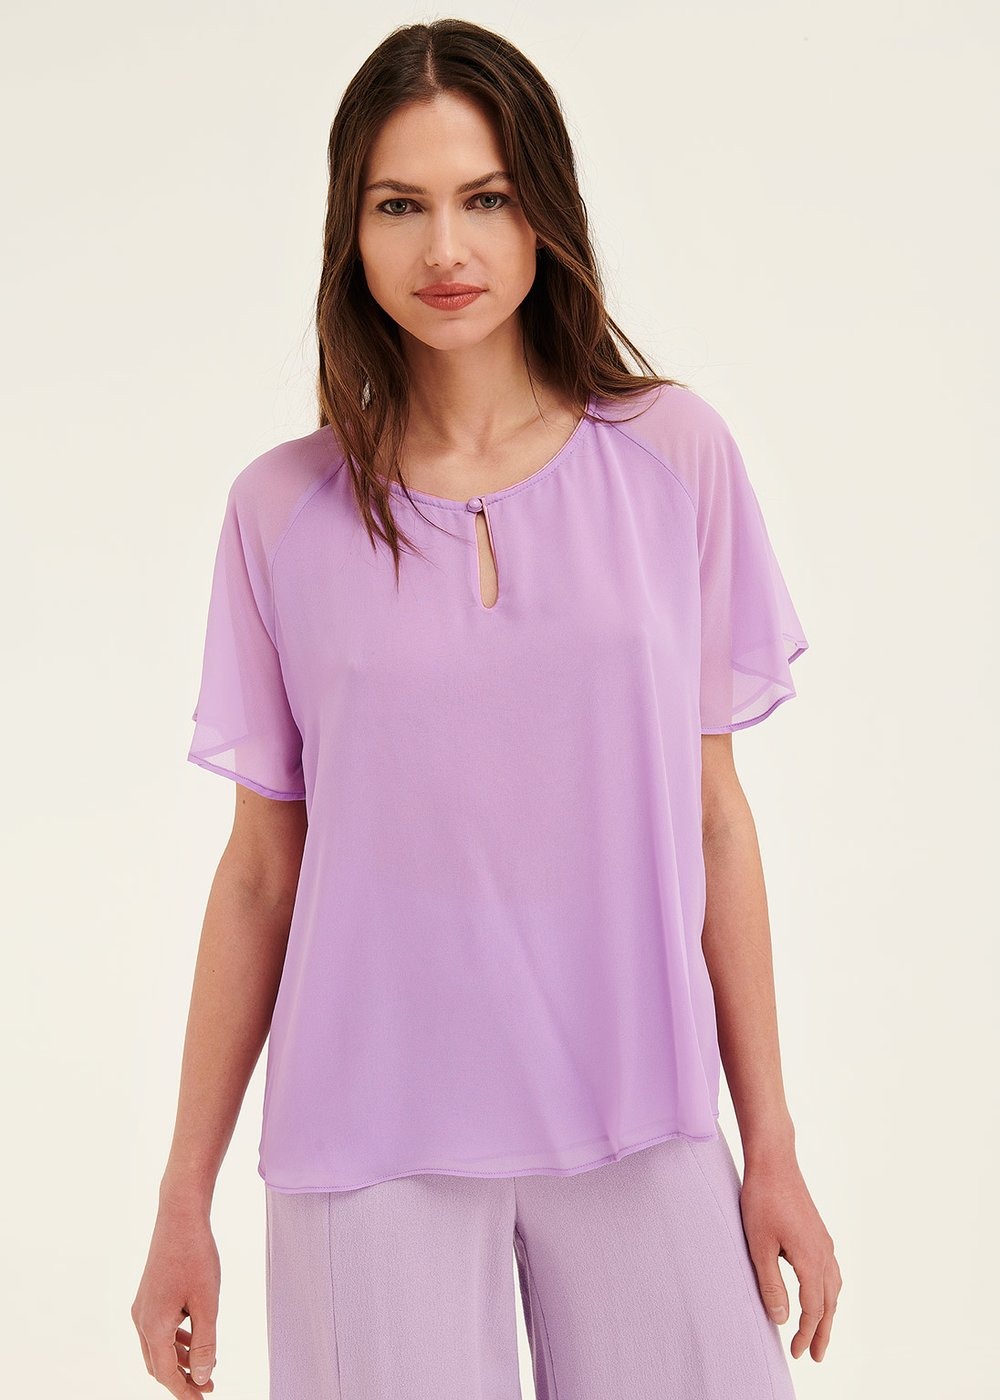 Crys shirt with ruffles - Bouganville - Woman